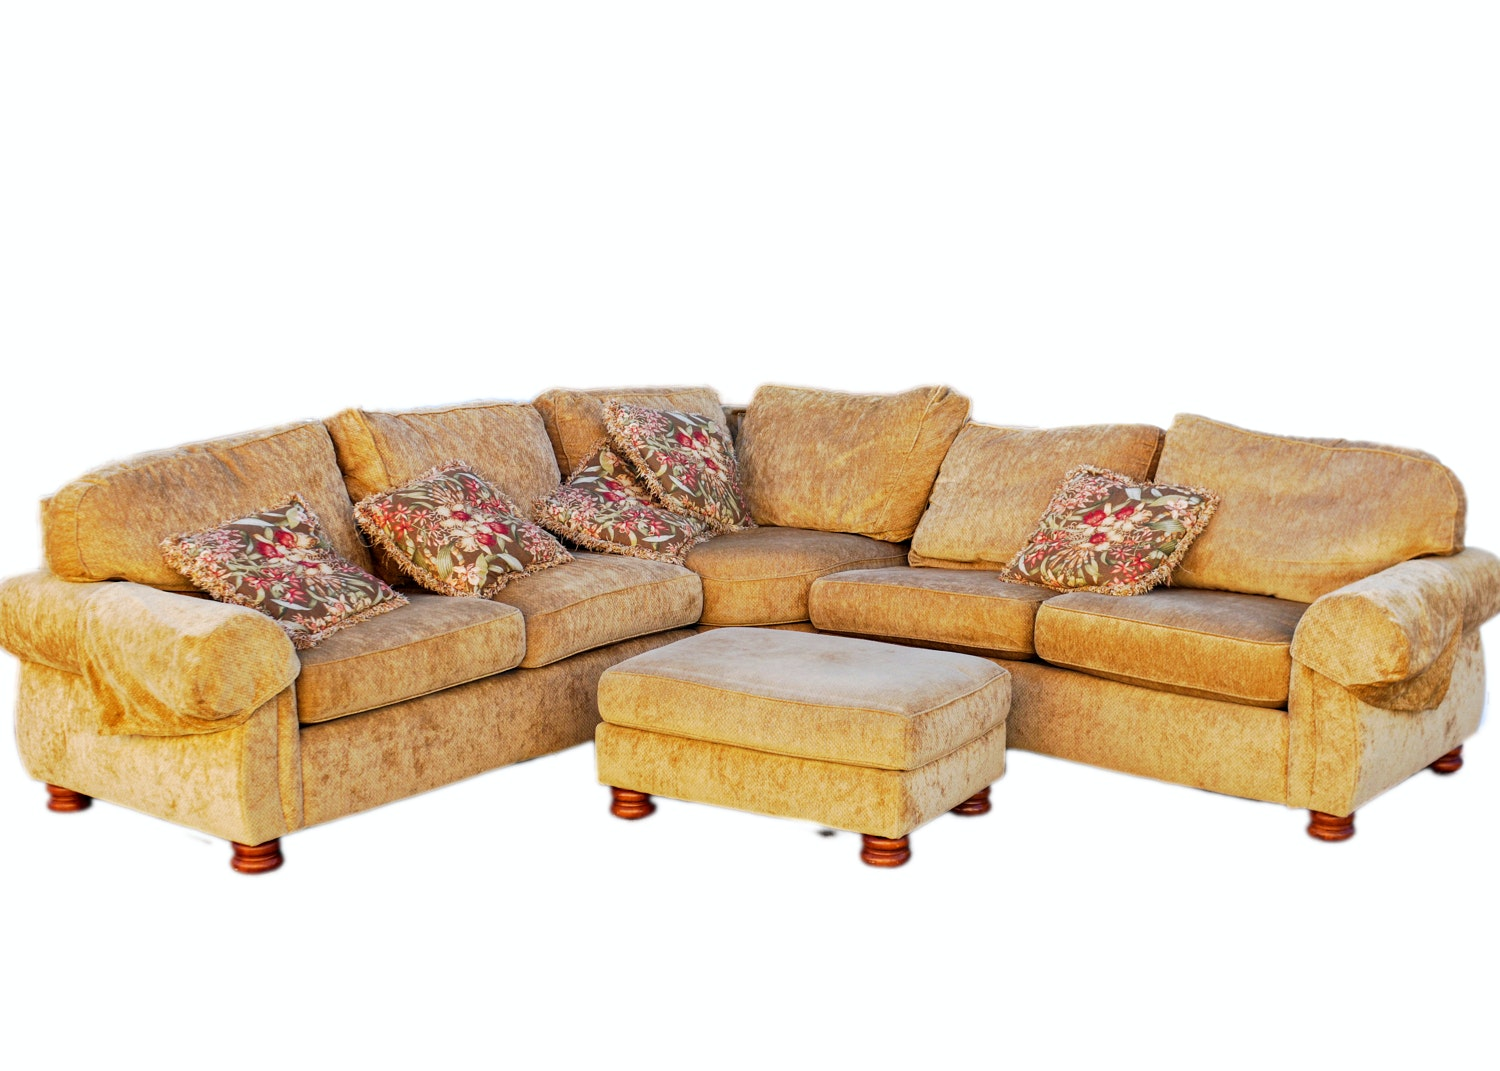 Thomasville Sectional Sofa And Ottoman ...